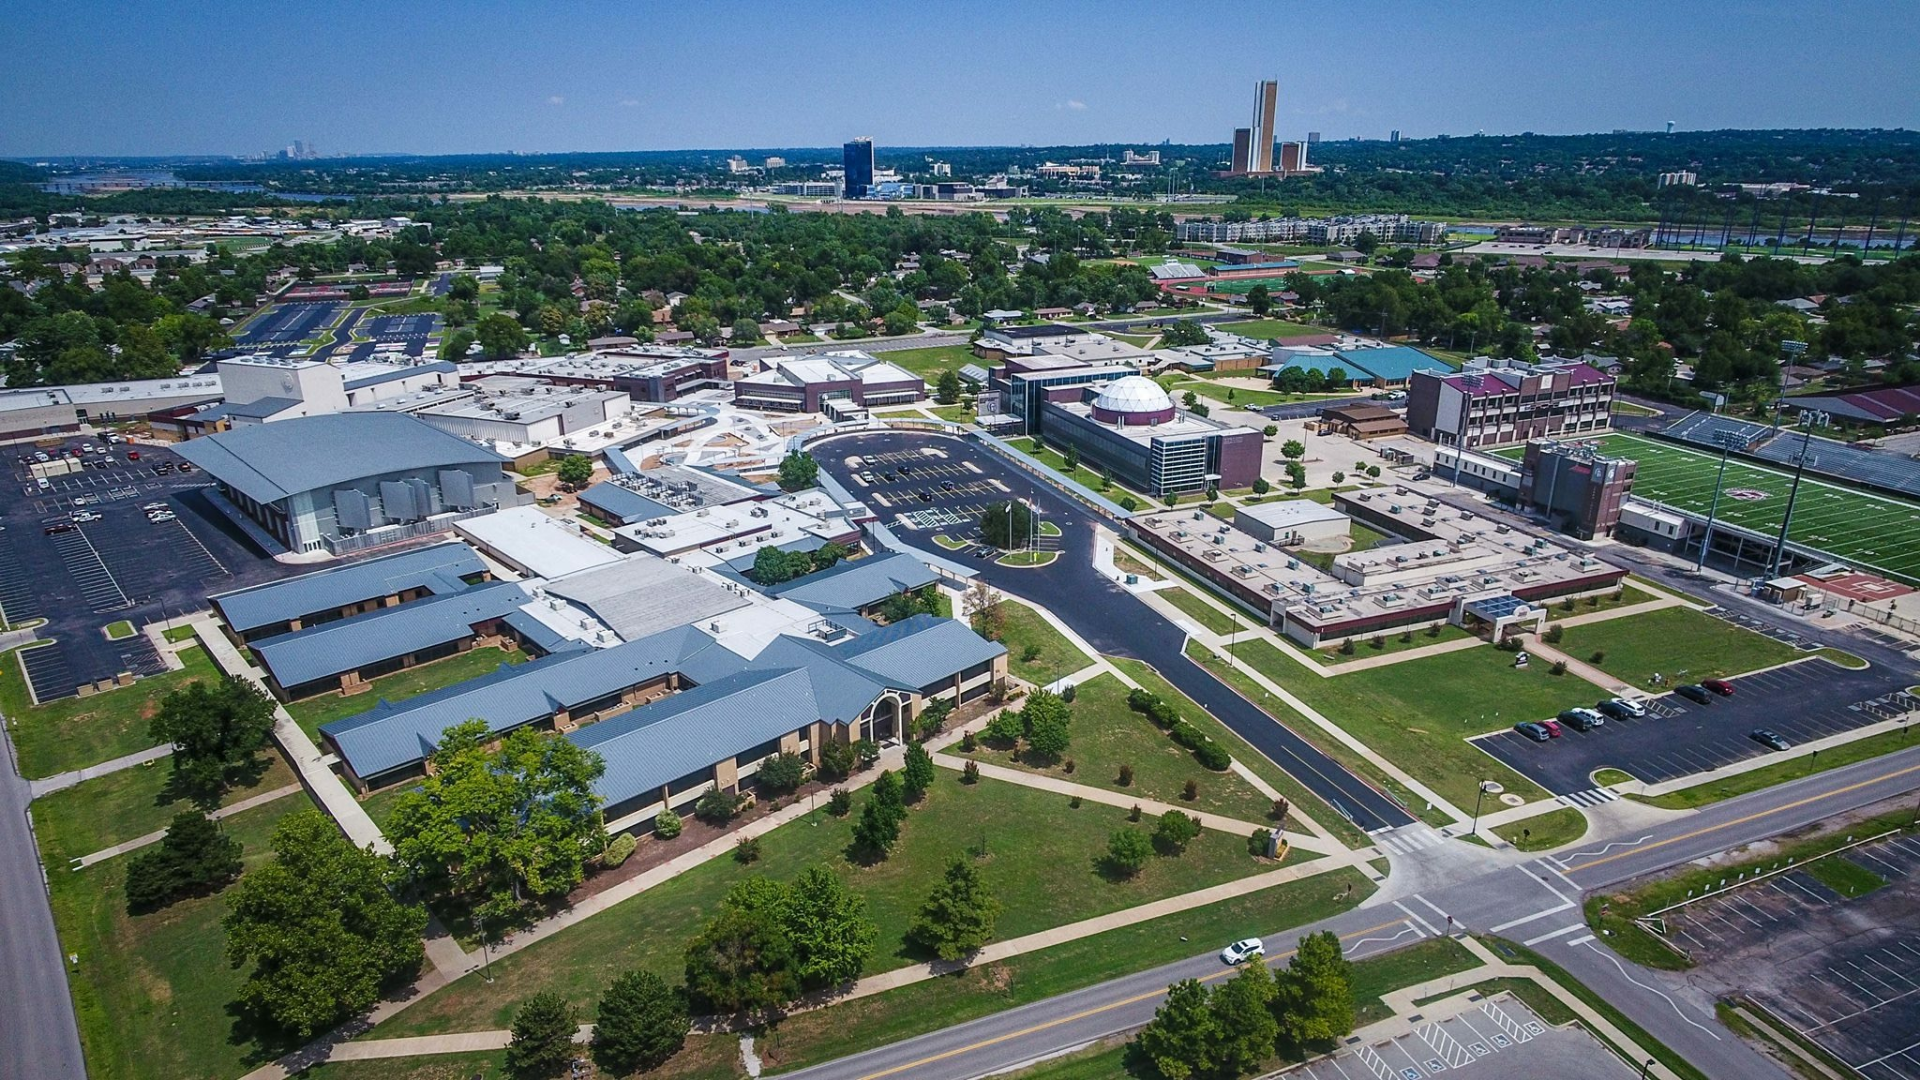 An aerial view of Jenks' Central Campus featuring Jenks High School, Freshman Academy, and Alternative Center.